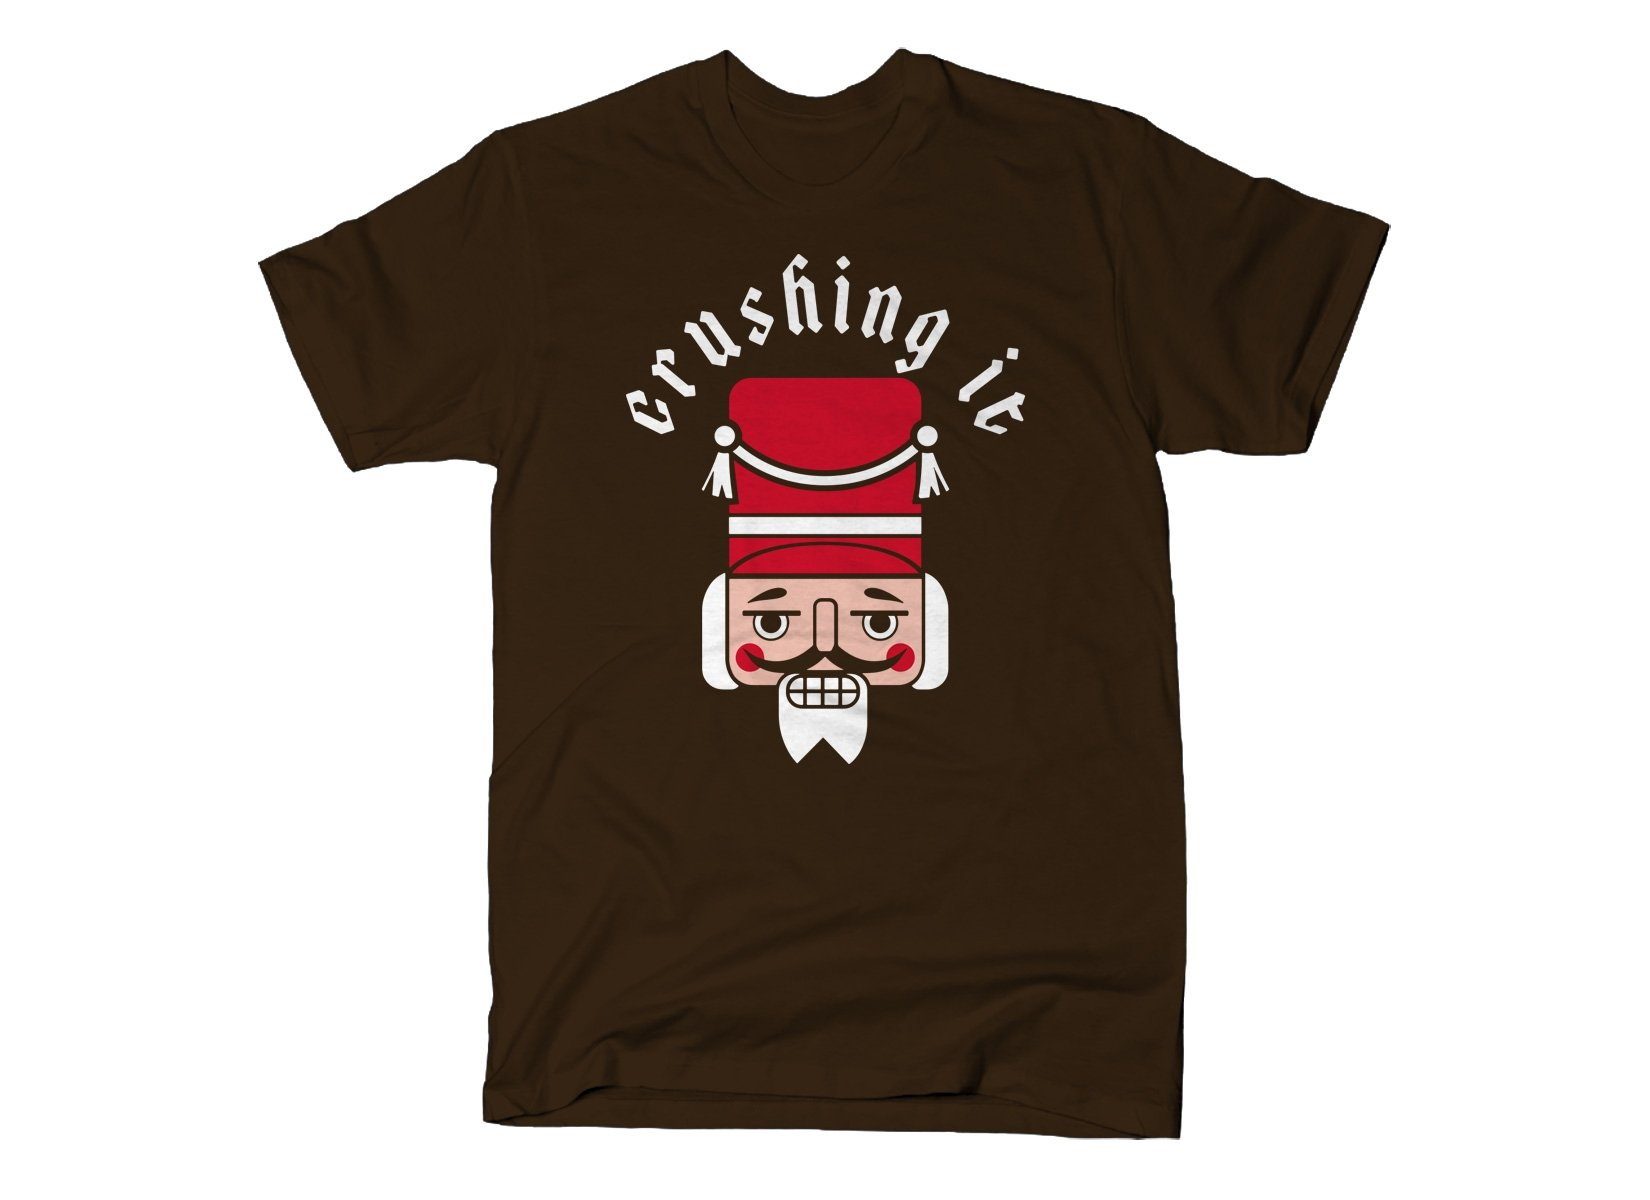 Crushing It on Mens T-Shirt